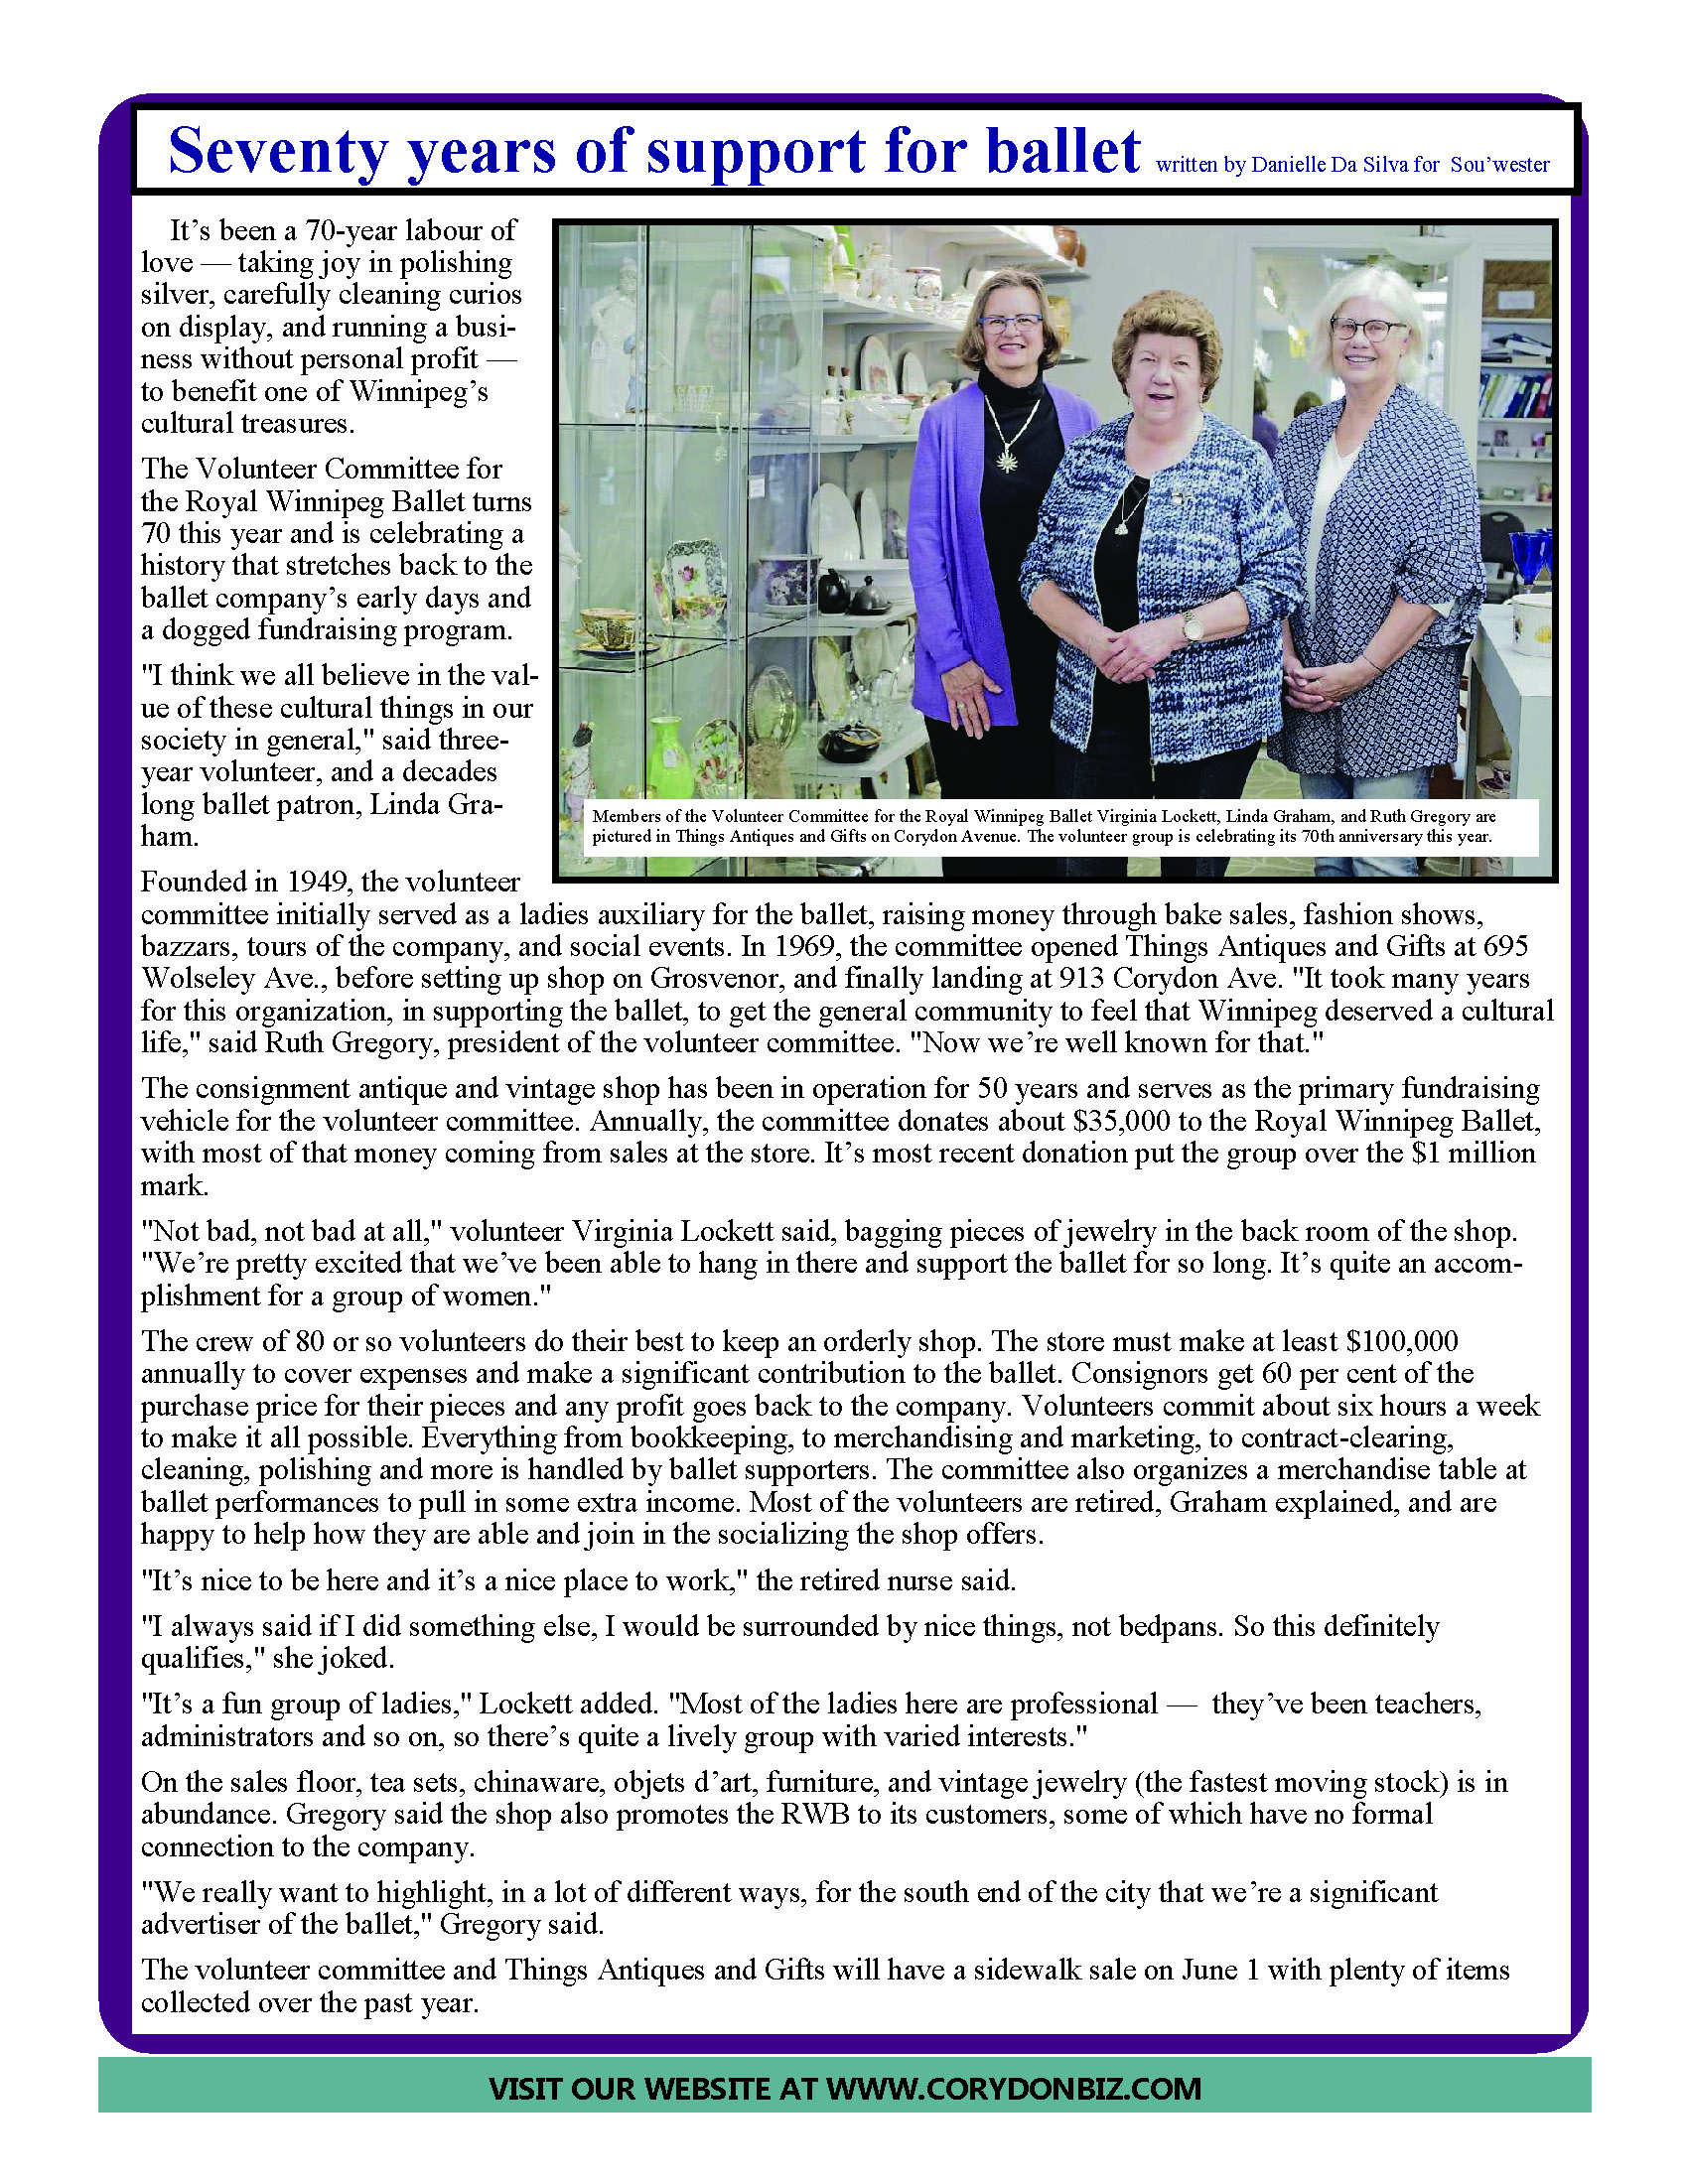 2019 Summer-CORYDON AVE. BIZ Newsletter_Page_03.jpg